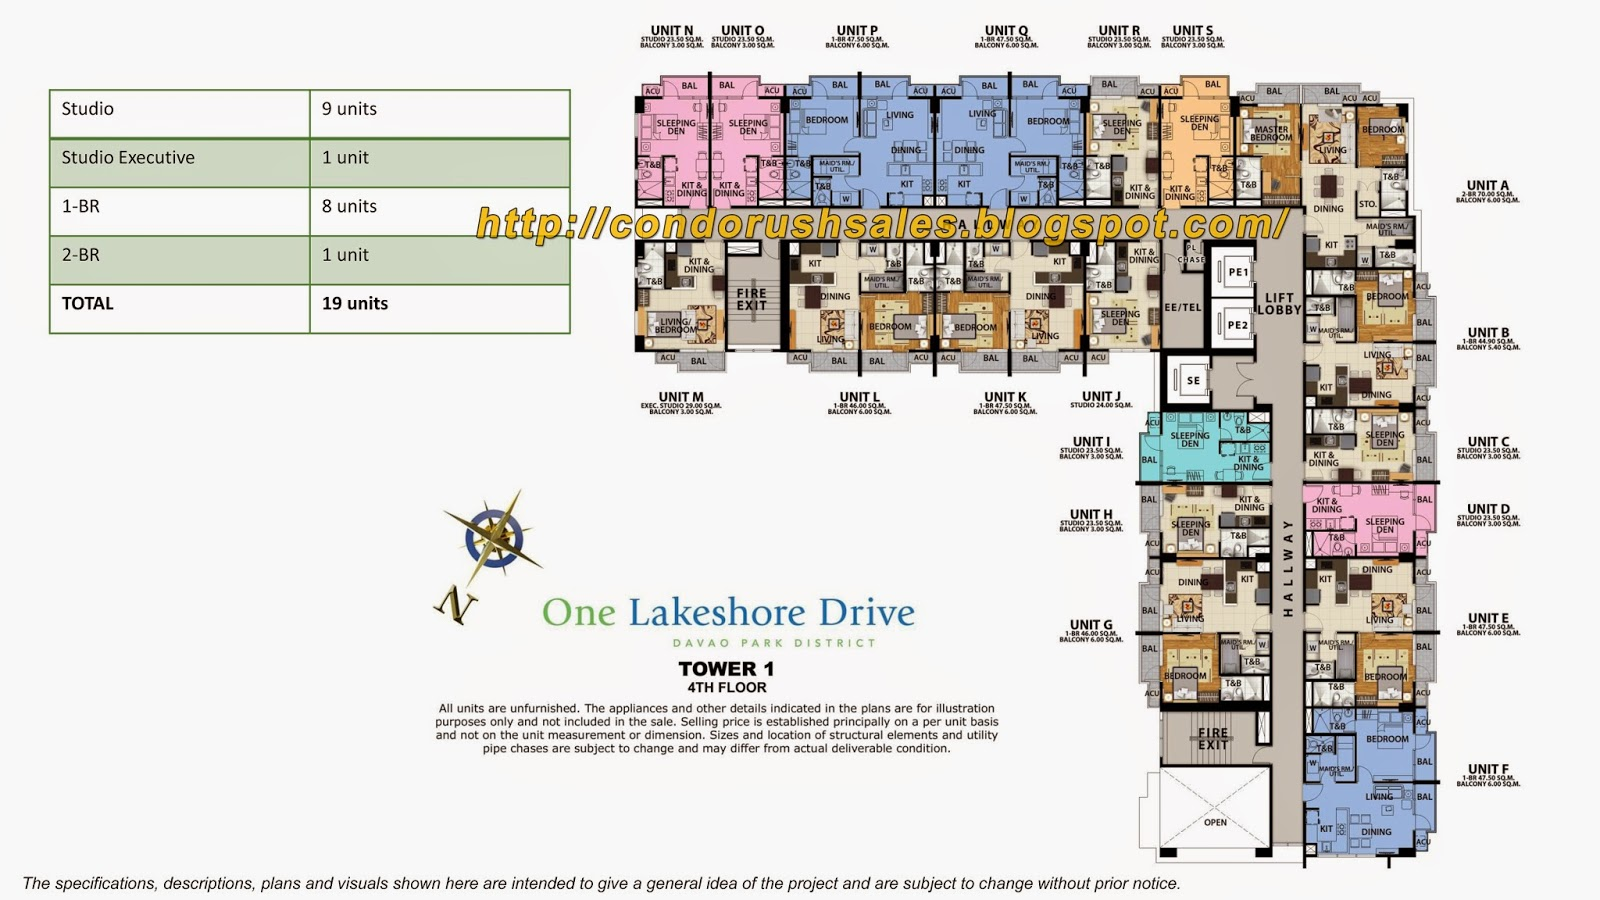 One Lakeshore Drive 4th Floor Units